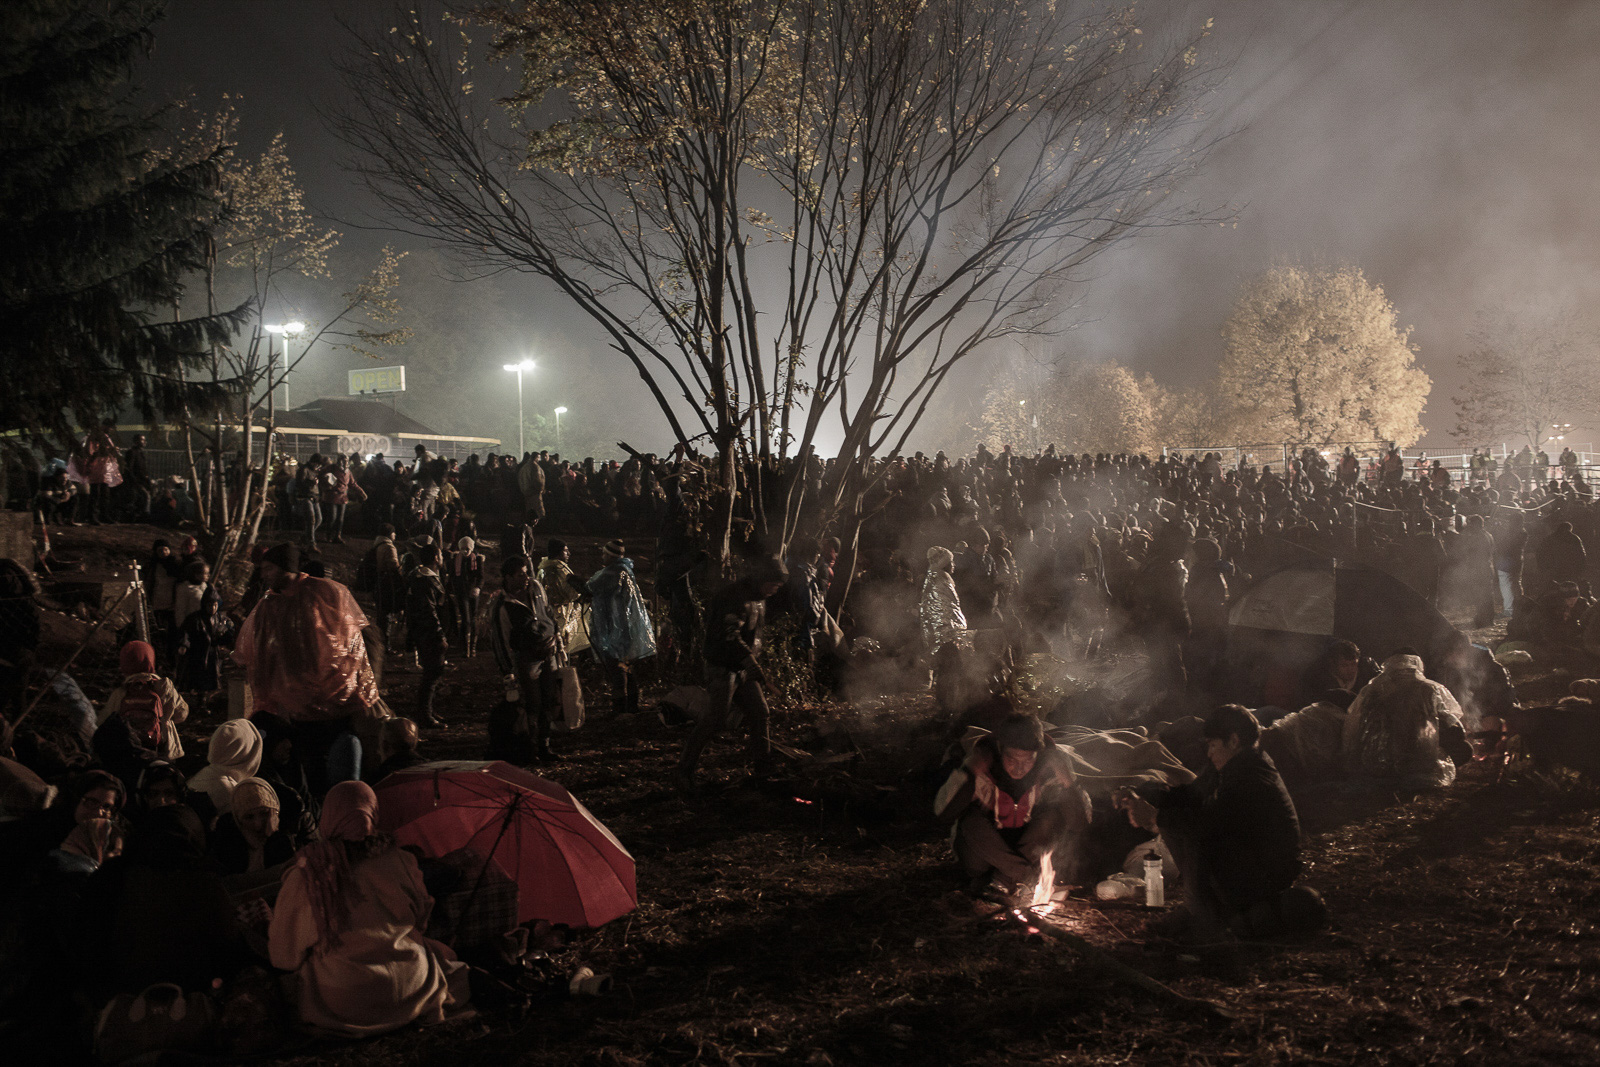 Šentilj, Slovenia - October 29, 2015: Refugees burn campfires as night gets cold while they wait to cross the border with Austria in Šentilj, Slovenia on October 29, 2015.